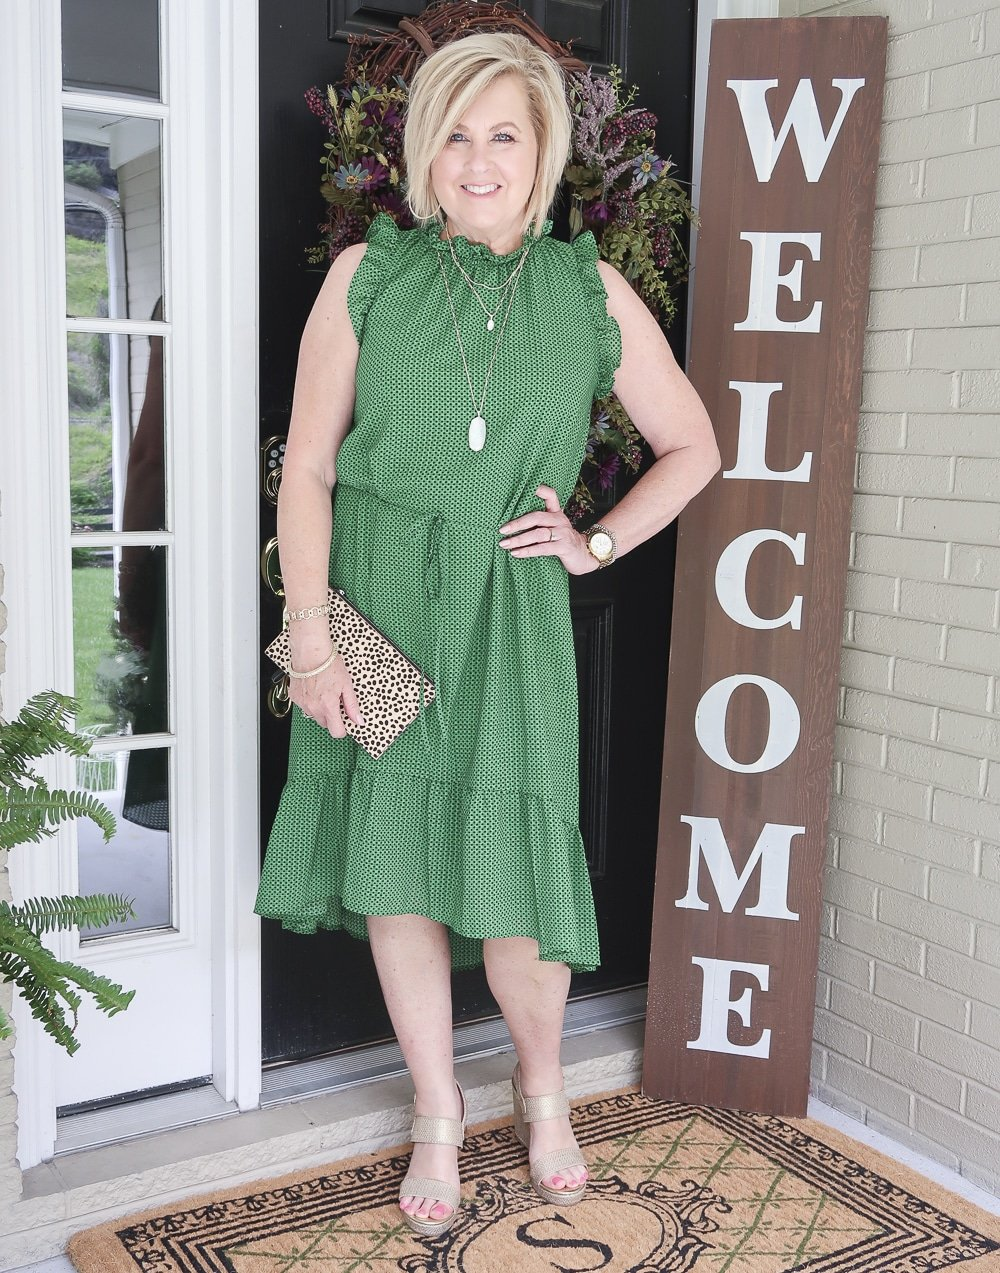 Fashion Blogger 50 Is Not Old is wearing a polka dotted dress that has a high neck and ruffles plus gold wedge shoes